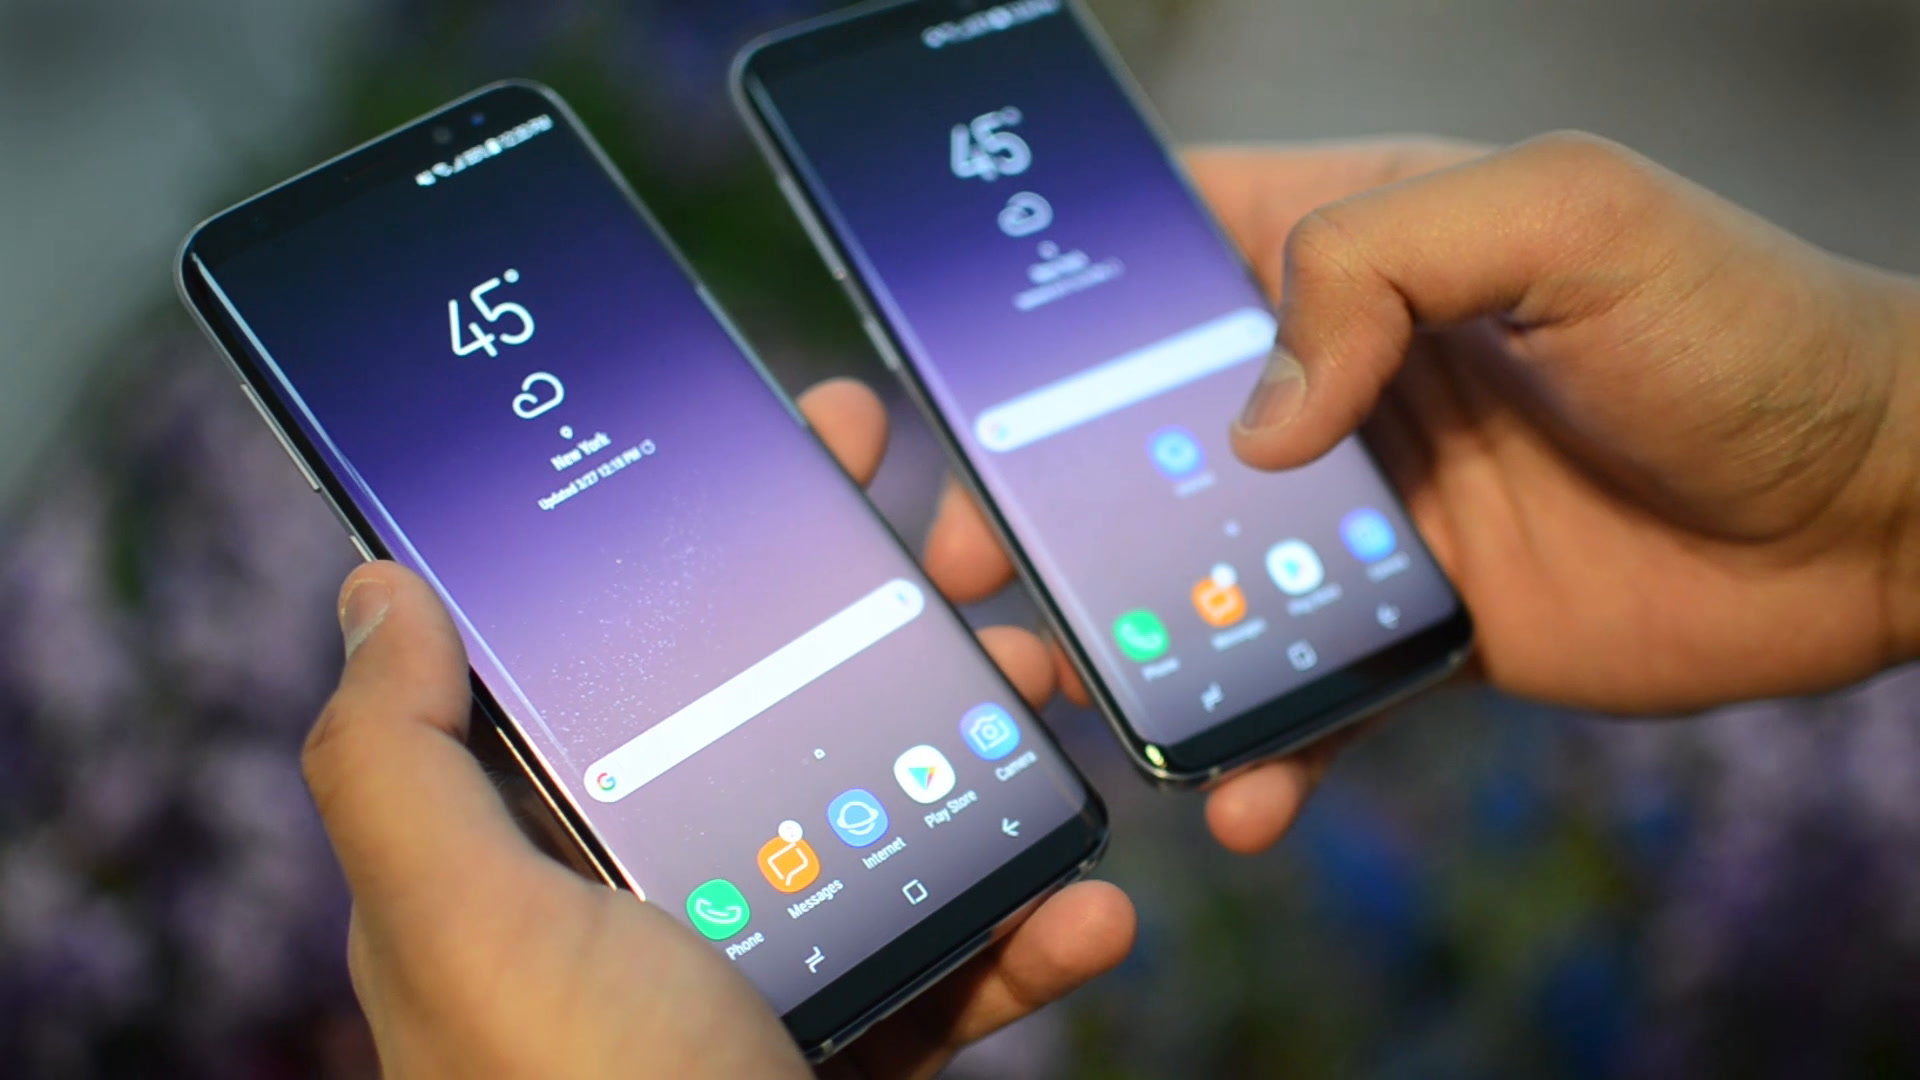 Samsung Galaxy S8 And S8 Plus Are The Top Two Smartphones